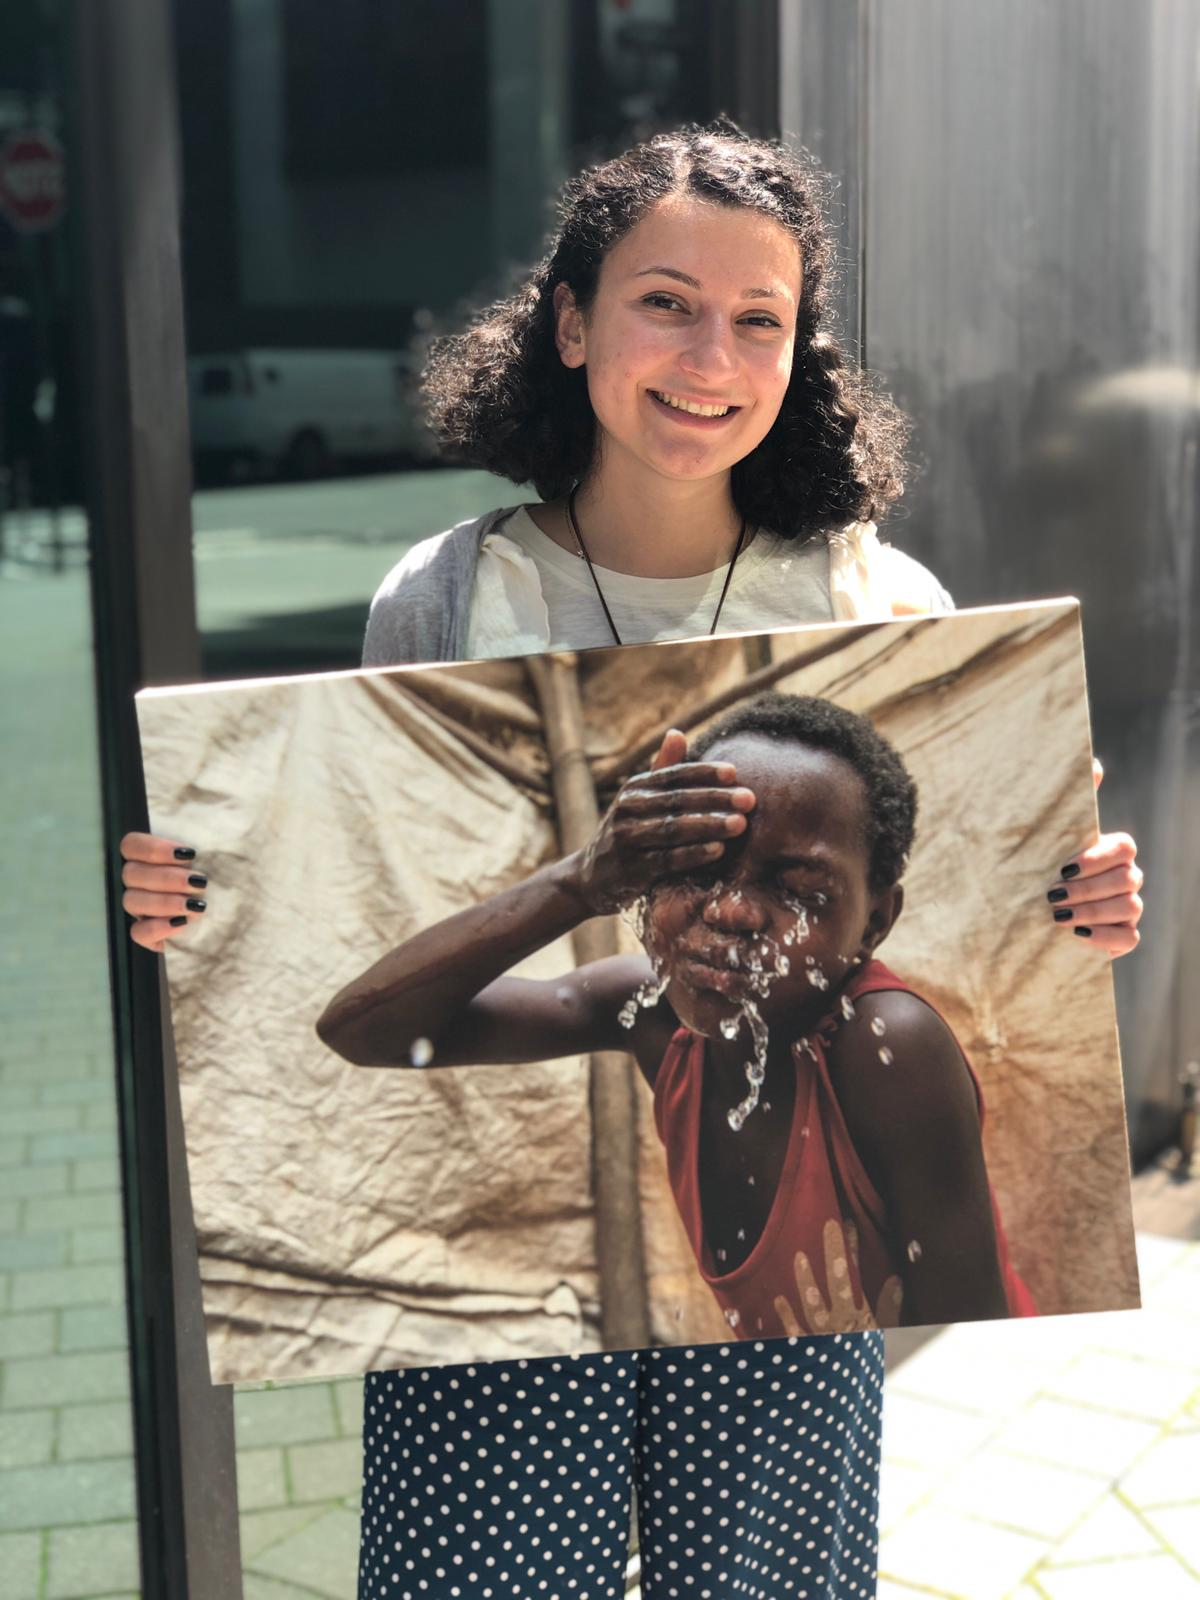 Grace is a CMMB intern. She poses outside with a canvas image of a child we serve in the field